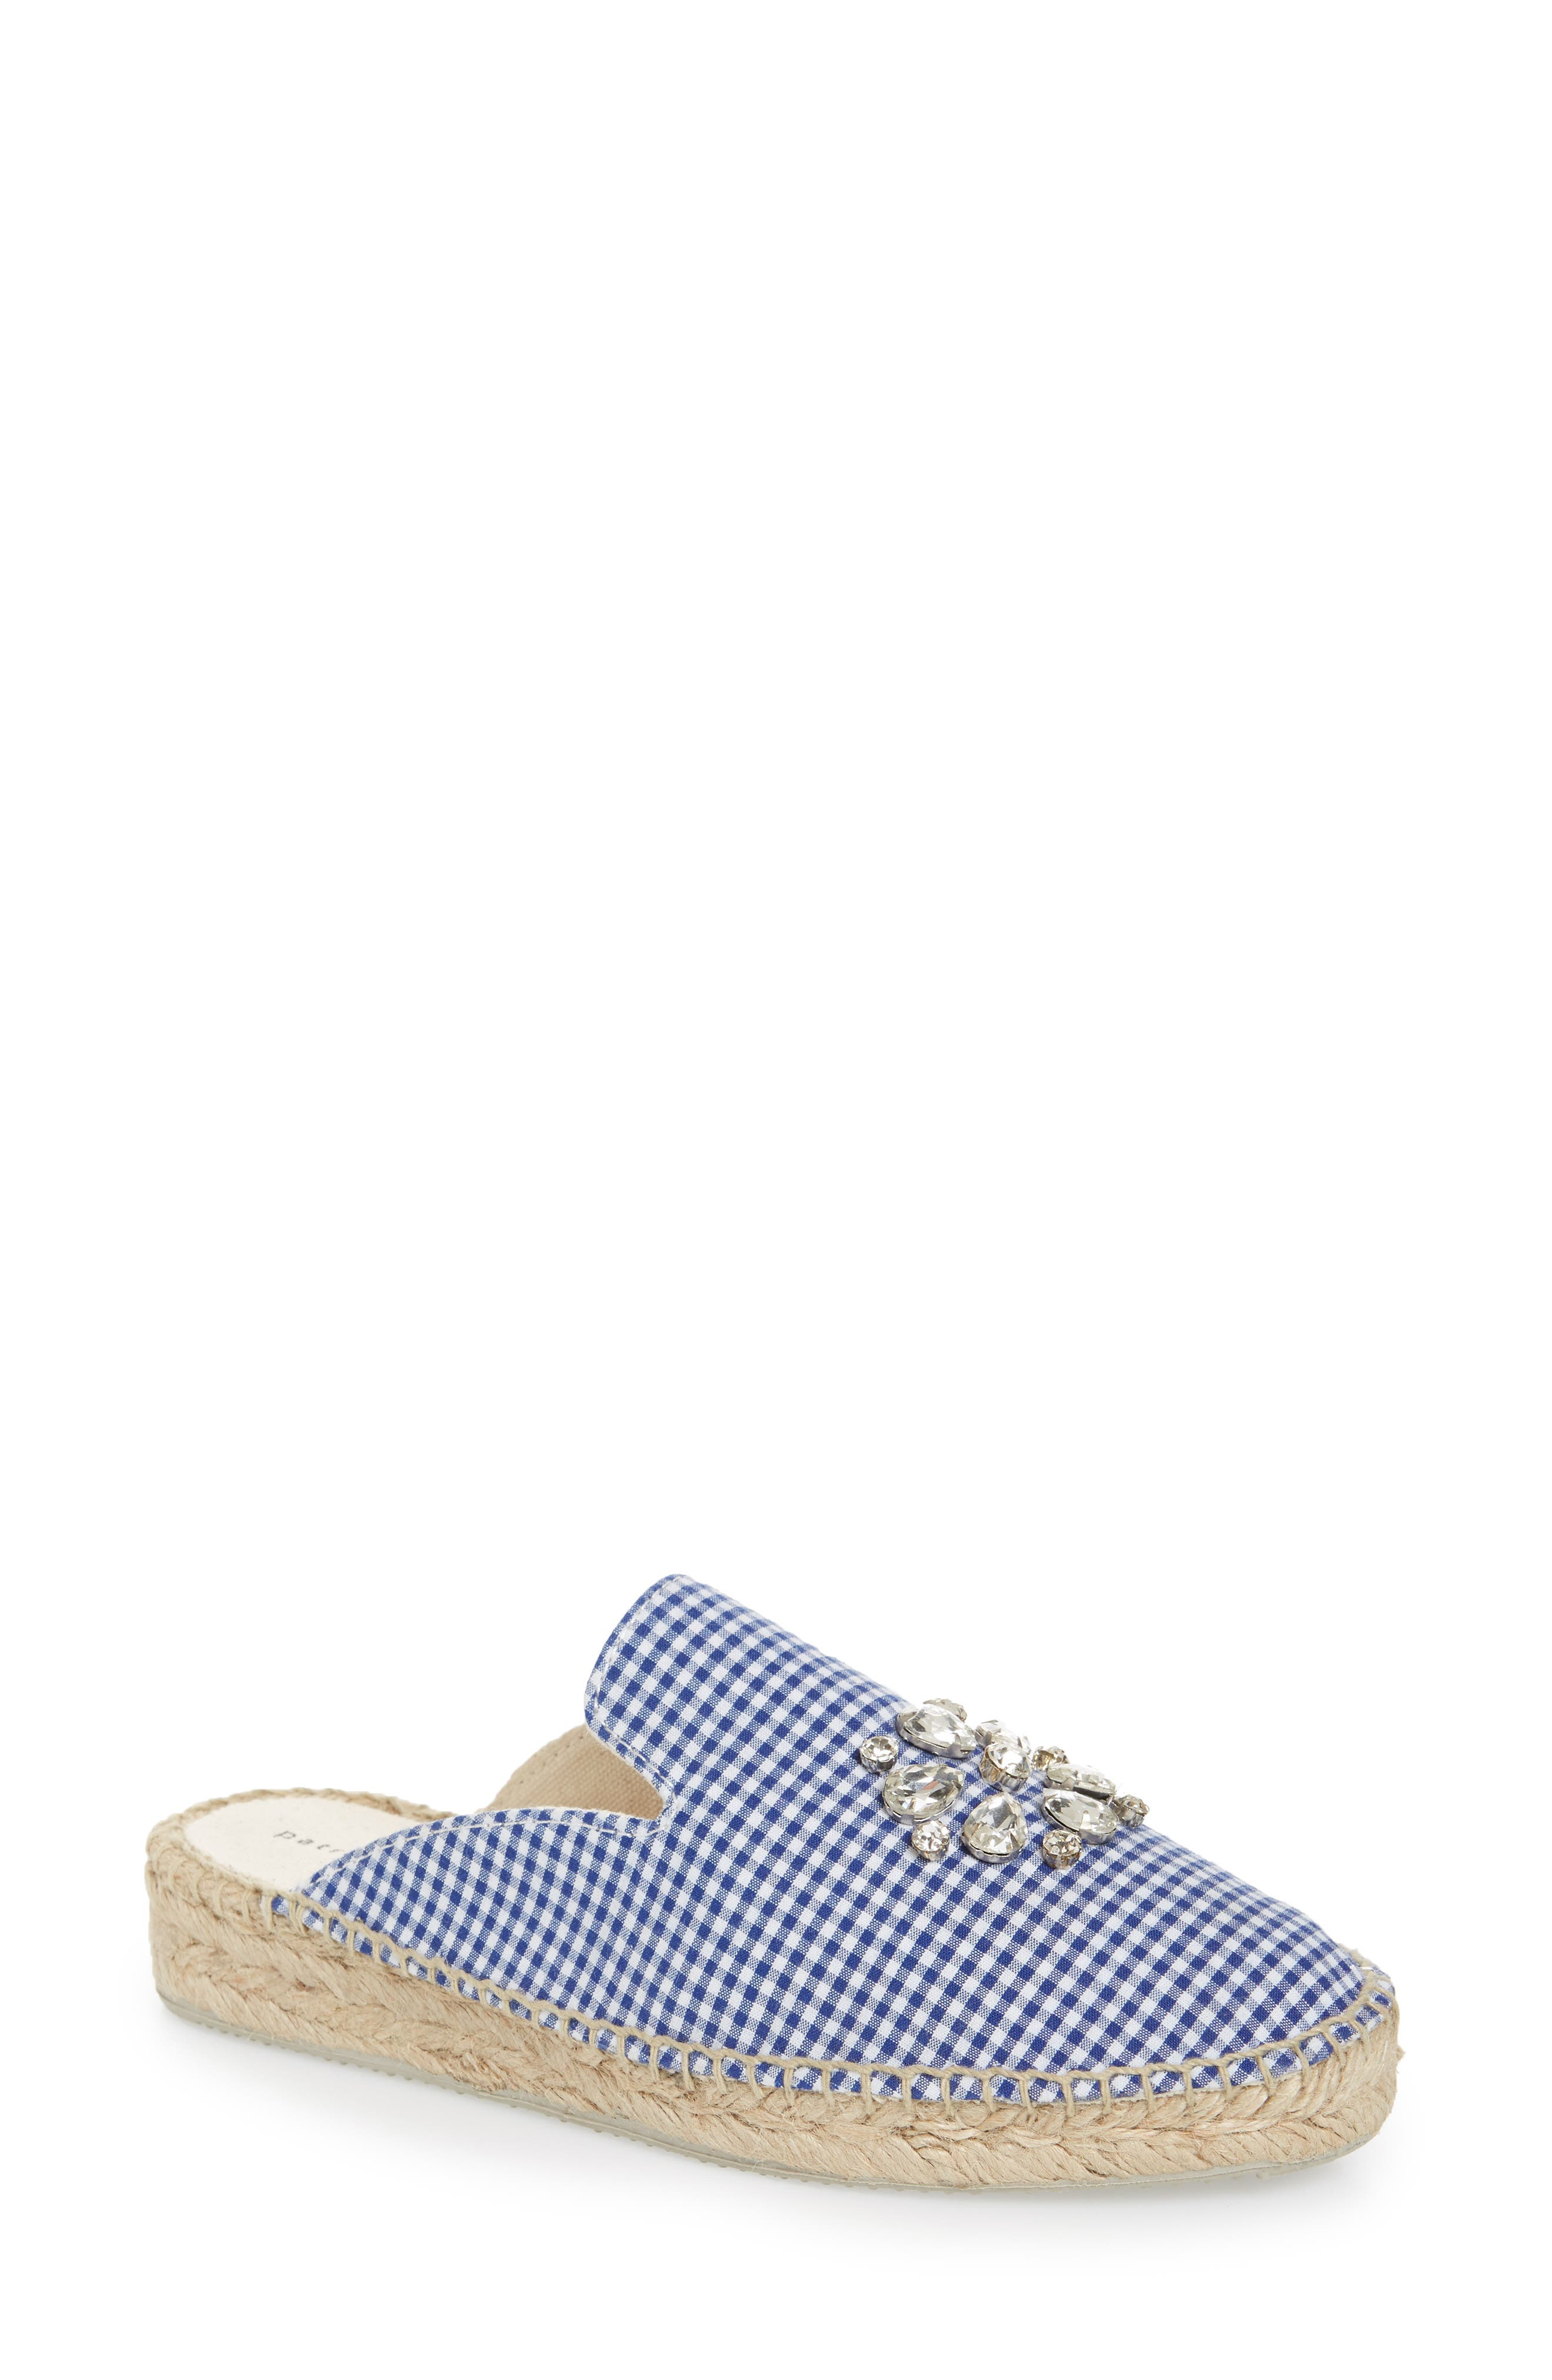 Main Image - patricia green Gingham Glam Embellished Loafer Mule (Women)